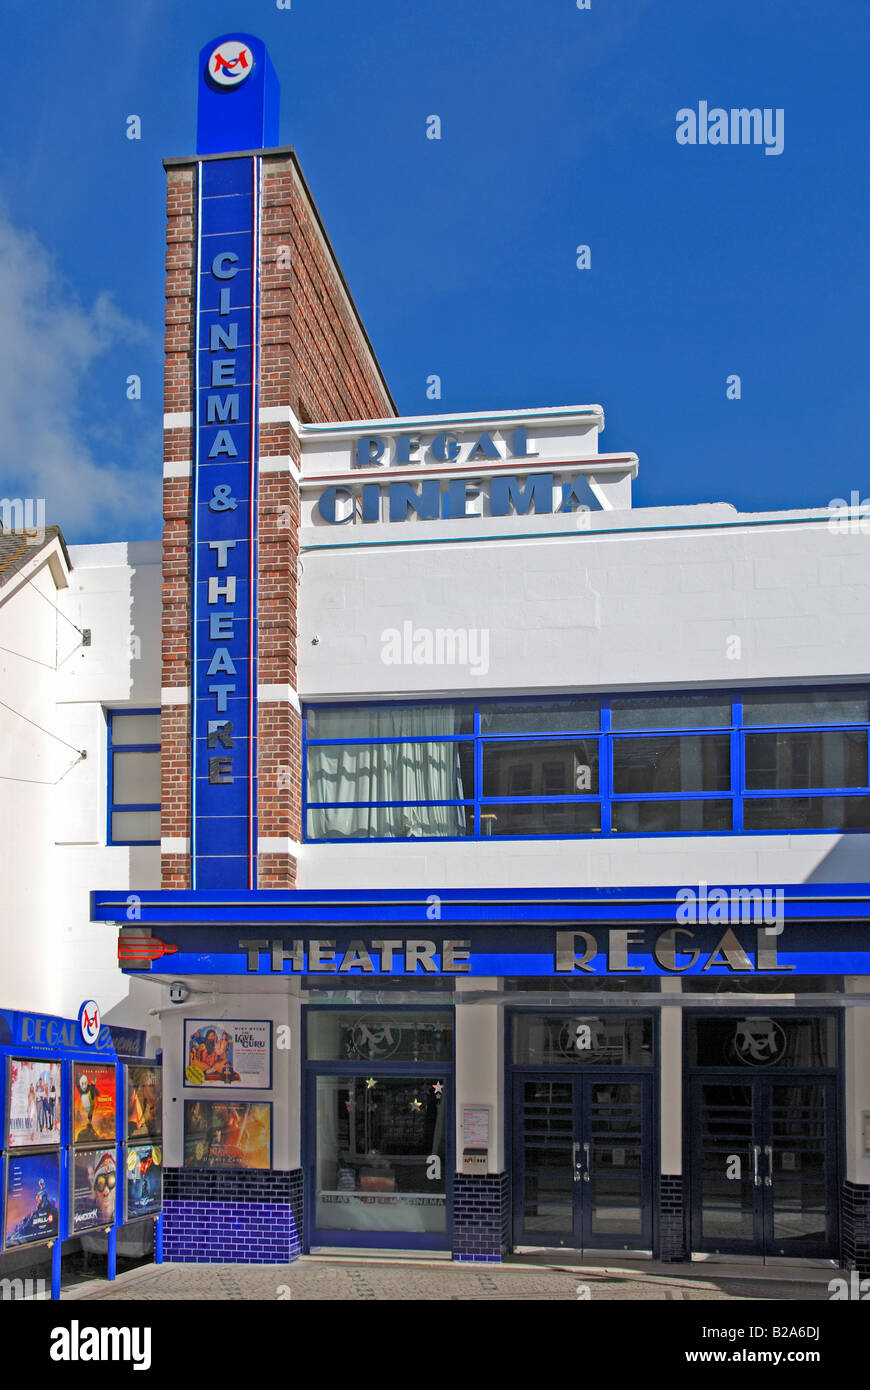 the recently refurbished regal cinema in redruth,cornwall,uk - Stock Image